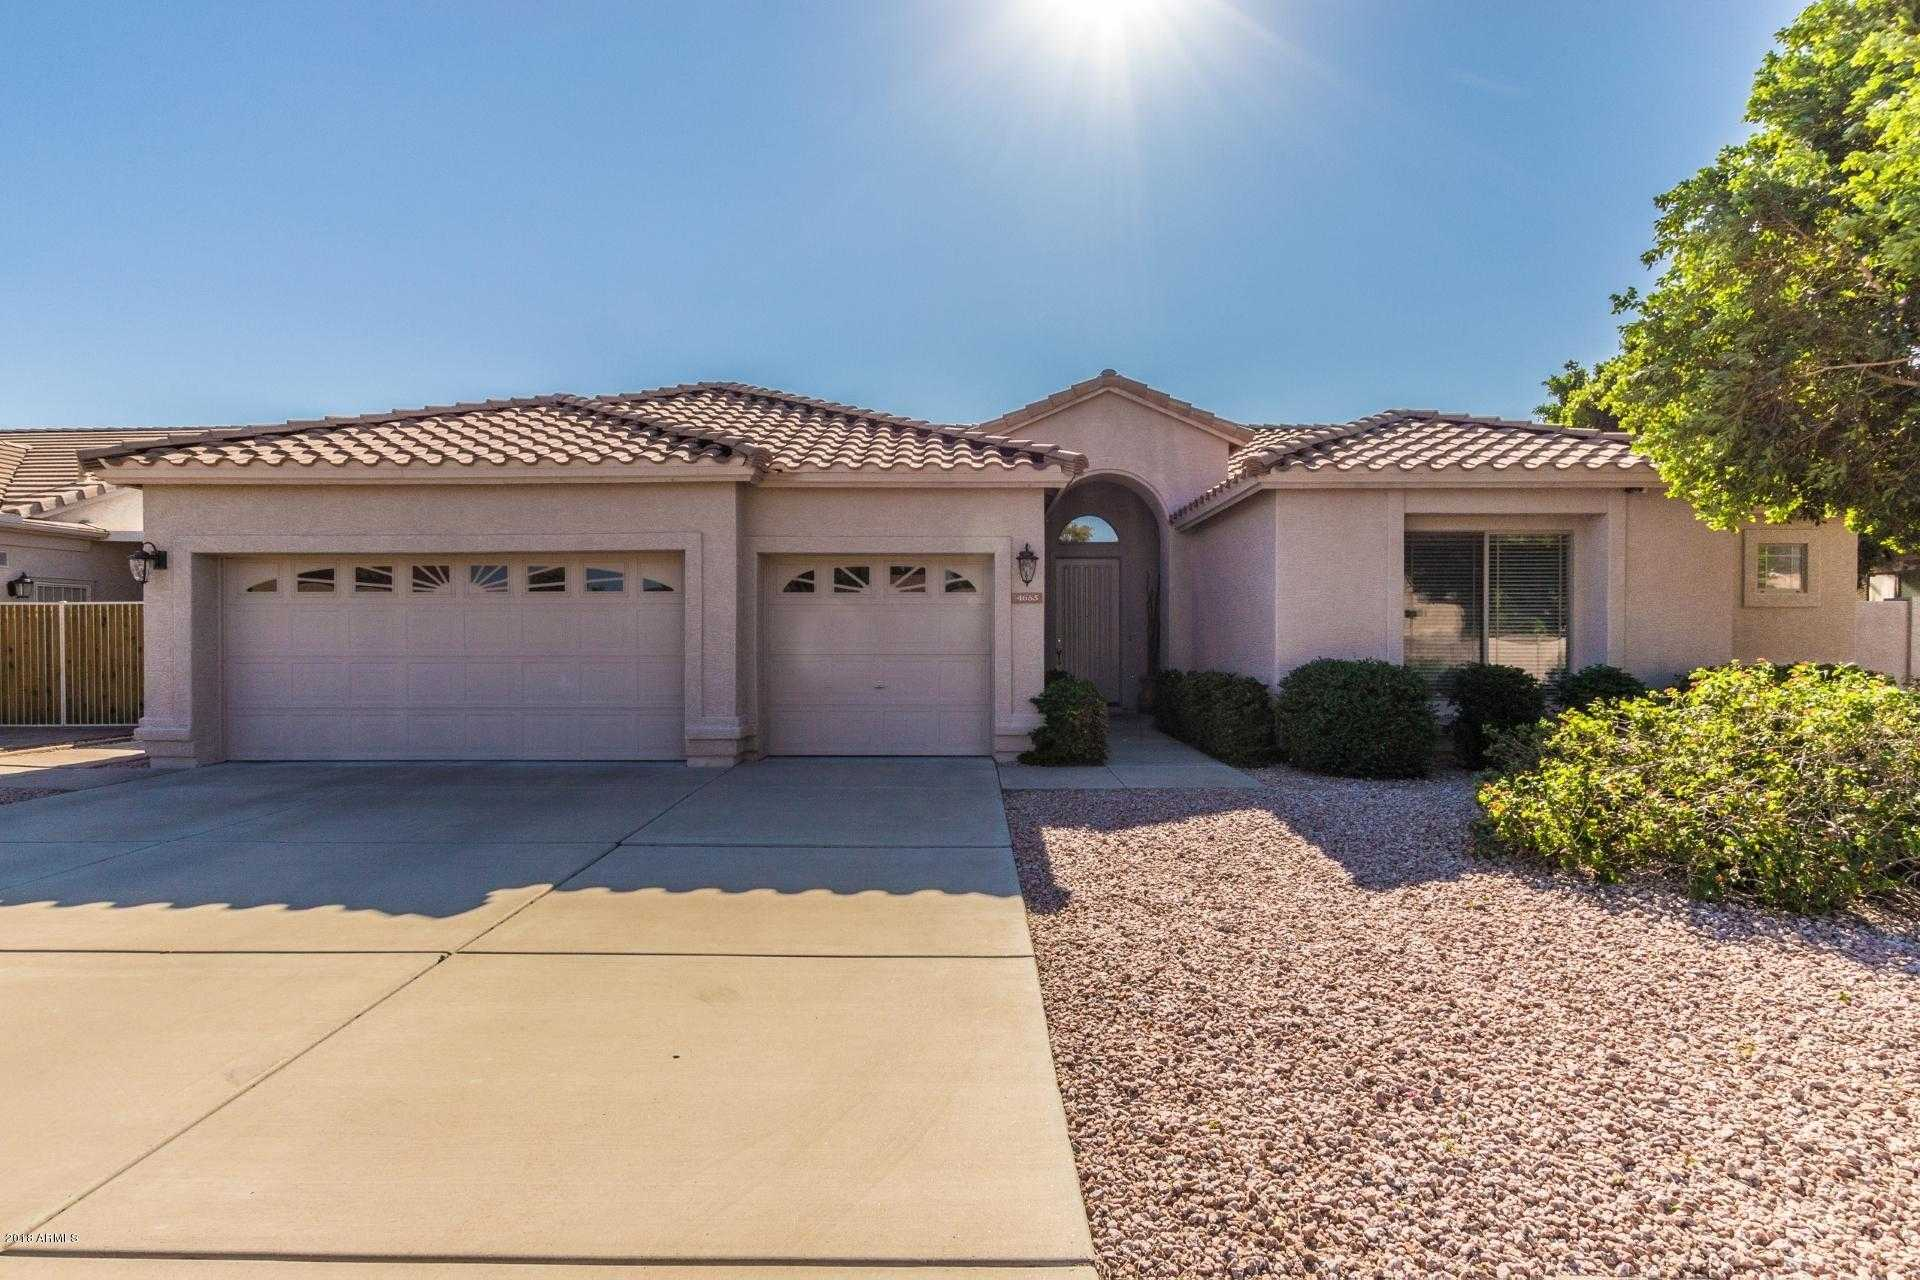 $380,000 - 4Br/3Ba - Home for Sale in Stetson Court, Glendale